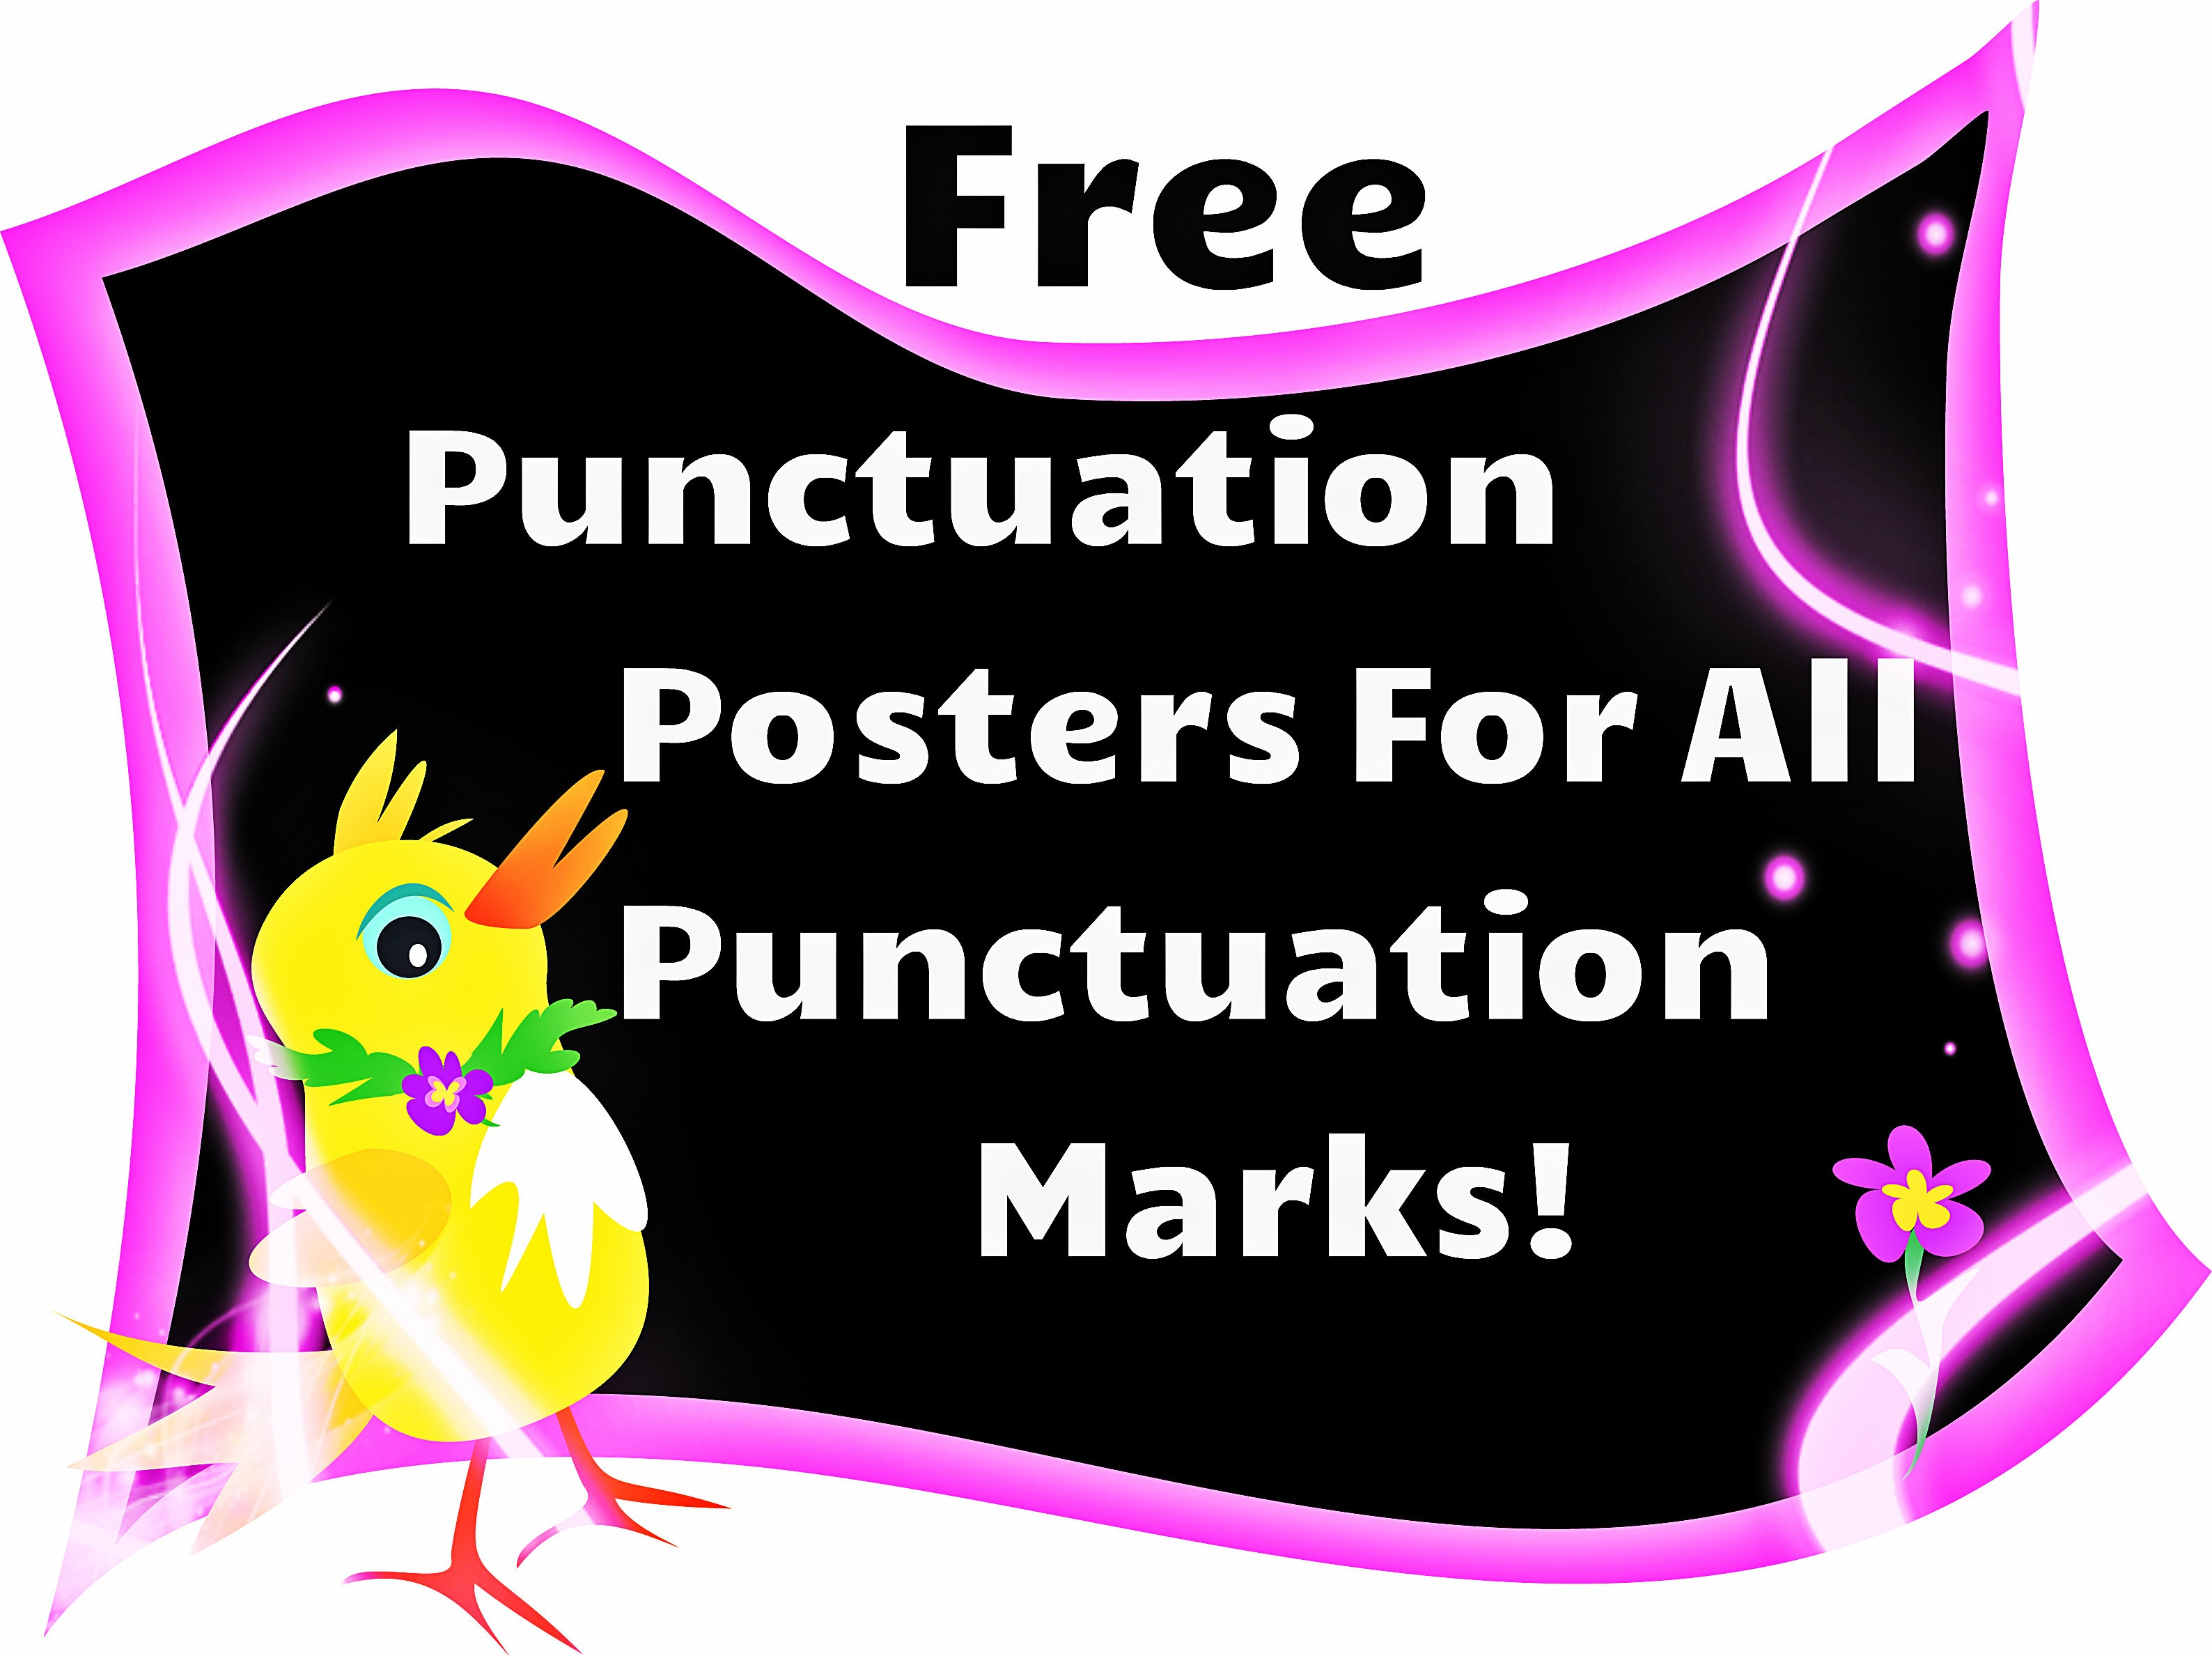 Free Punctuation Posters | Punctuation Posters Free | Readyteacher - Punctuation Posters Printable Free